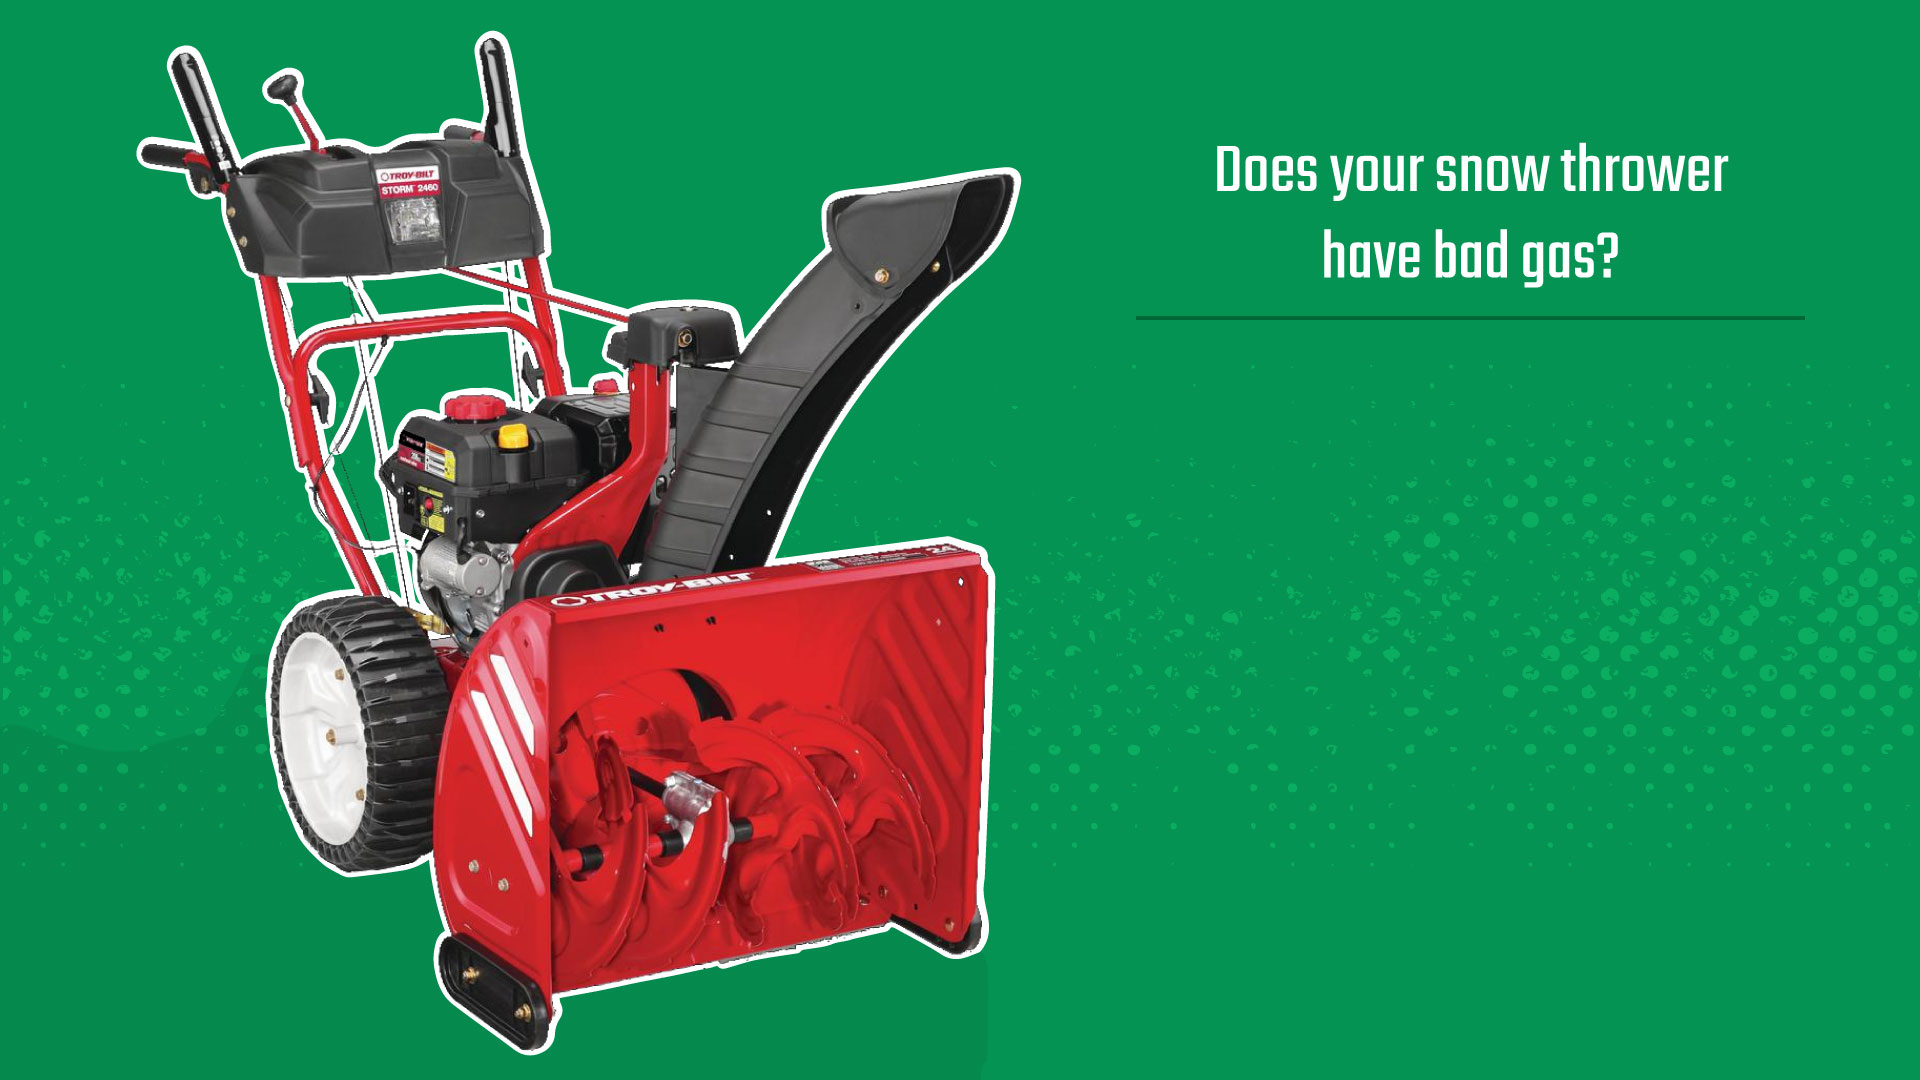 red troy bilt snow thrower on green background